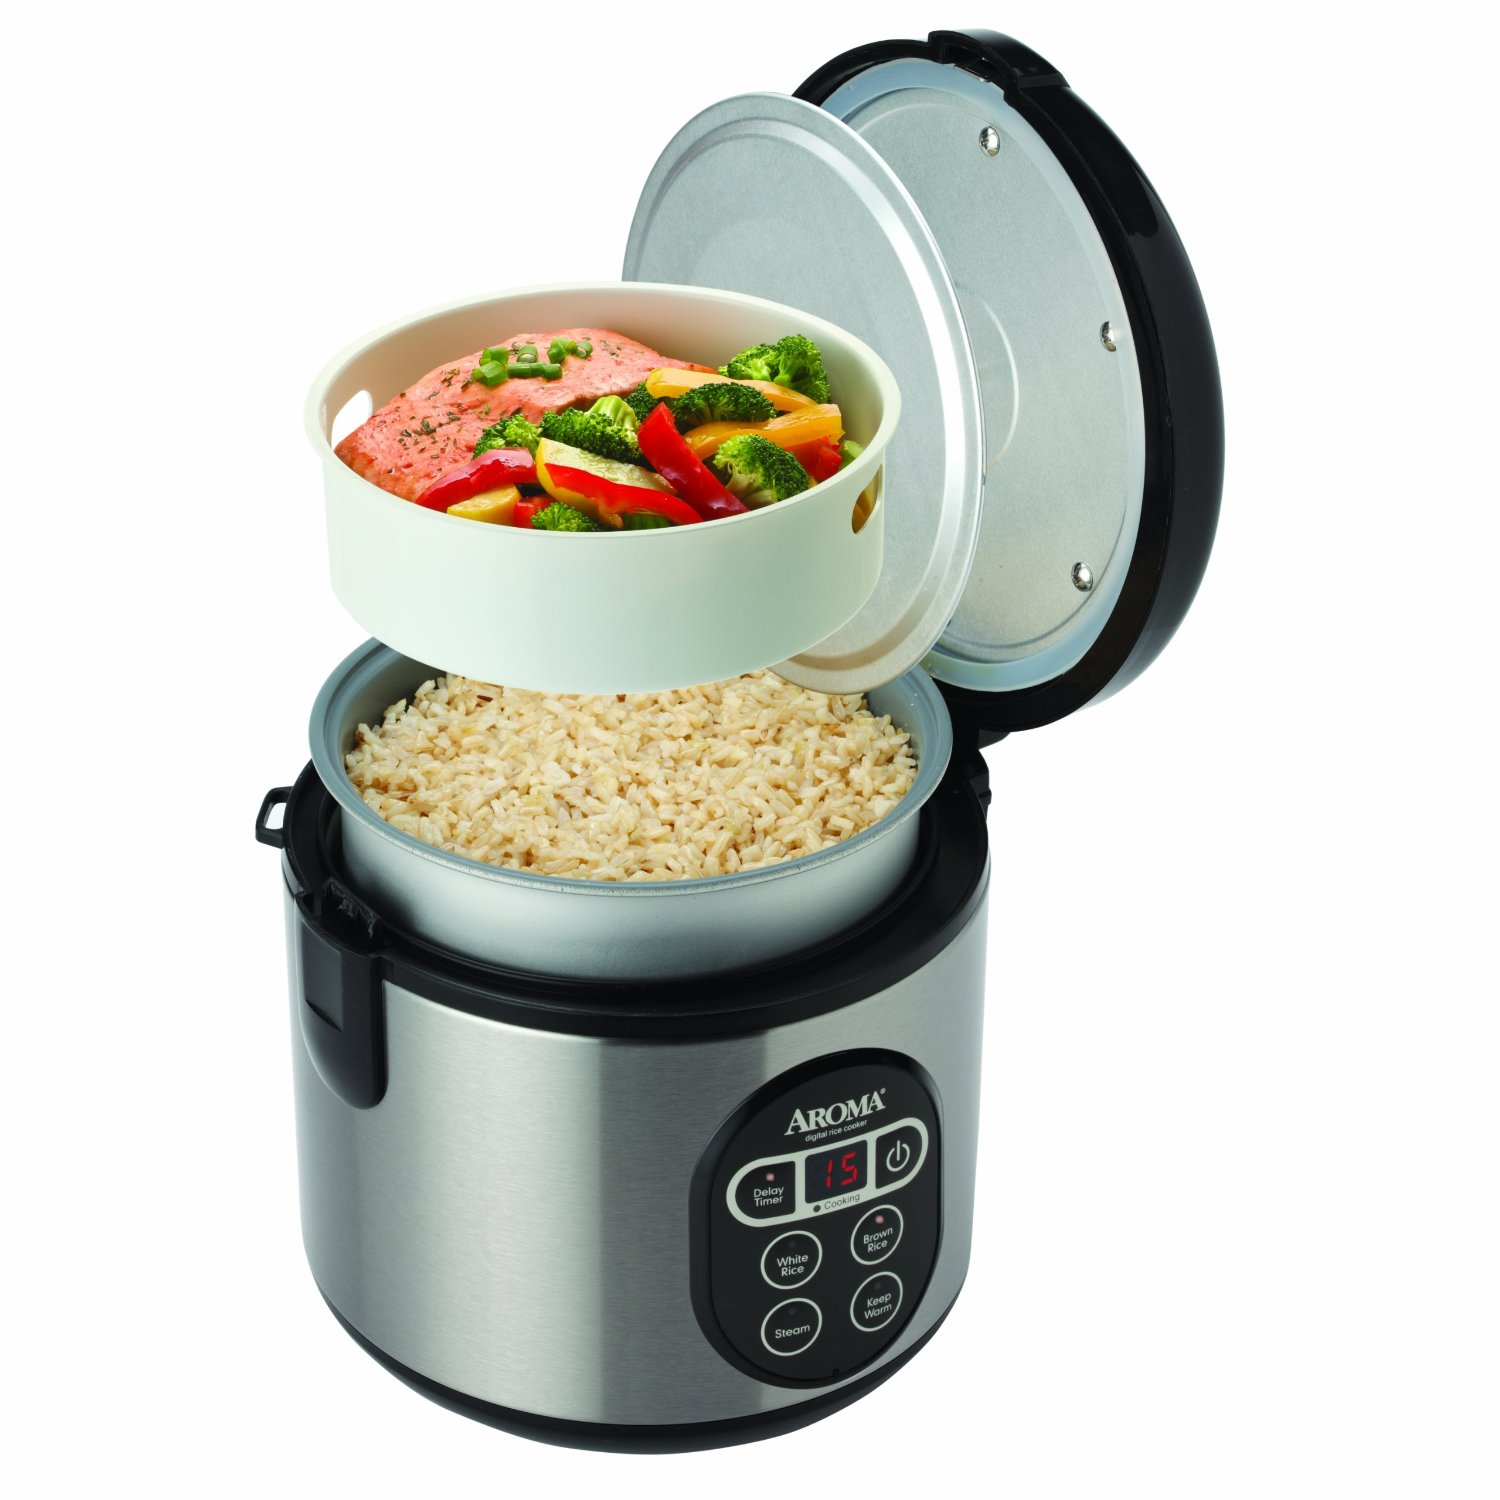 7 Full Stainless Steel Rice Cookers with Reviews (2017) - Essential Guide